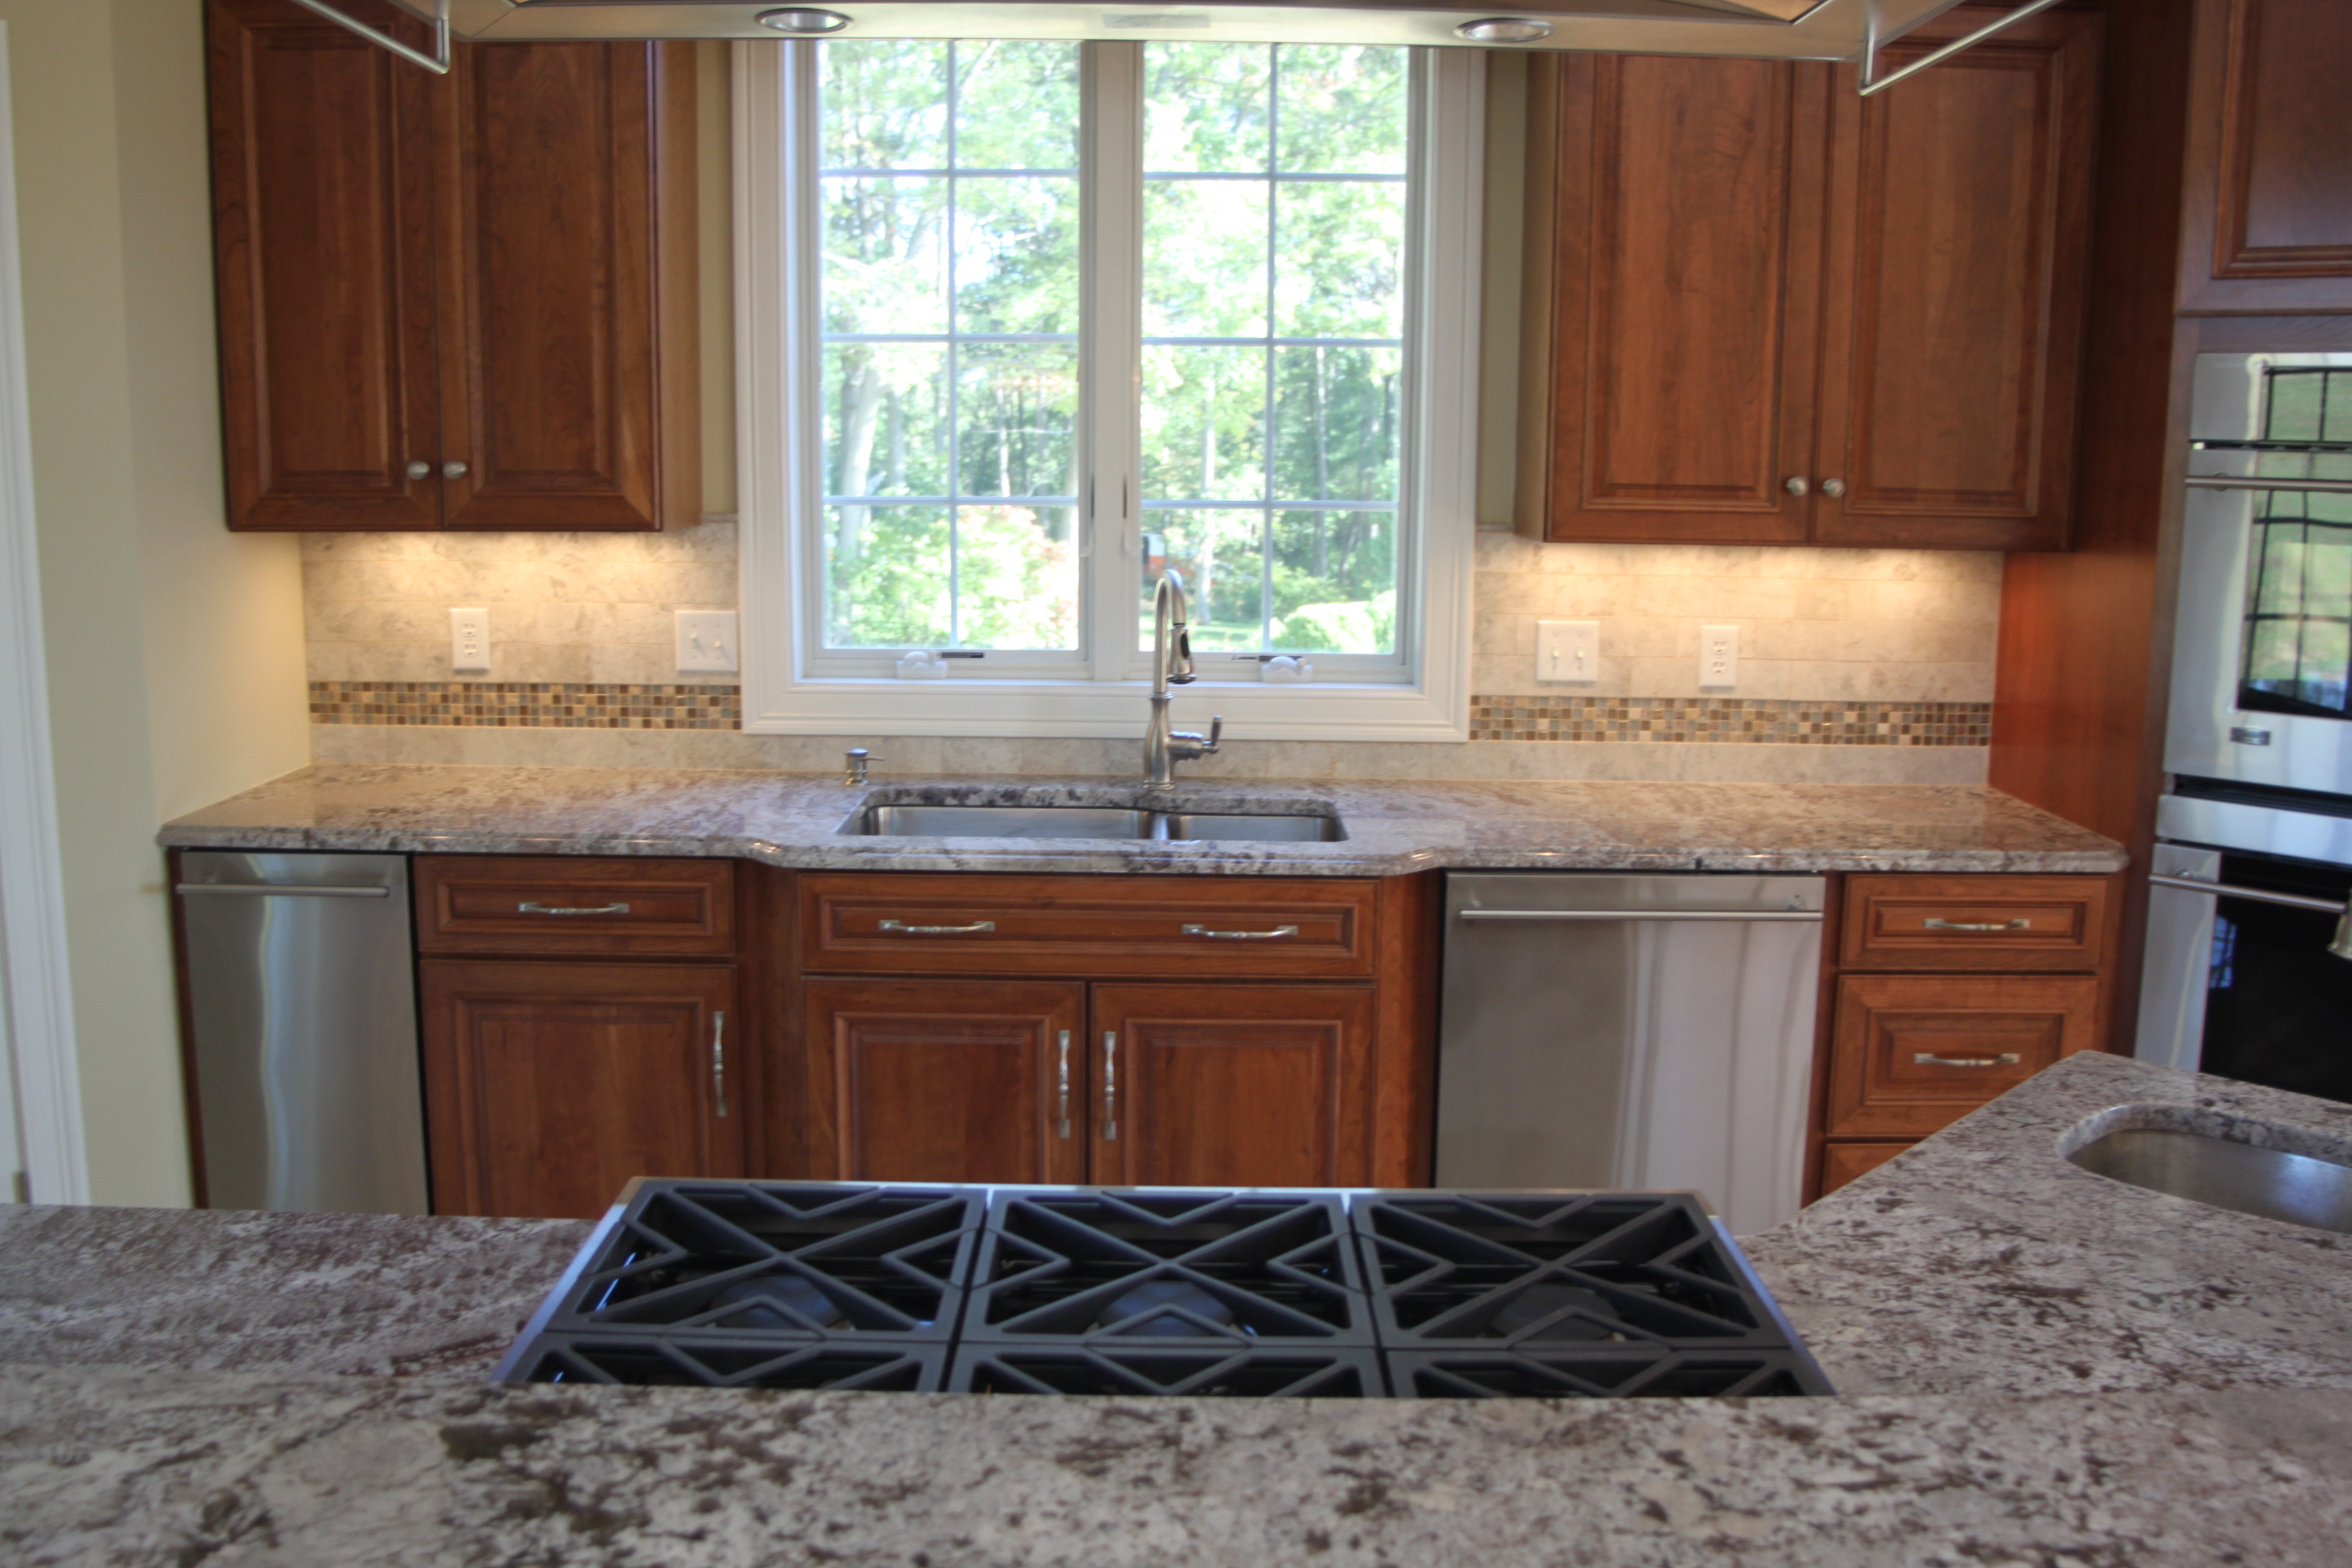 is hardwood flooring better than carpet of should your flooring match your kitchen cabinets or countertops with should your flooring match your kitchen cabinets or countertops